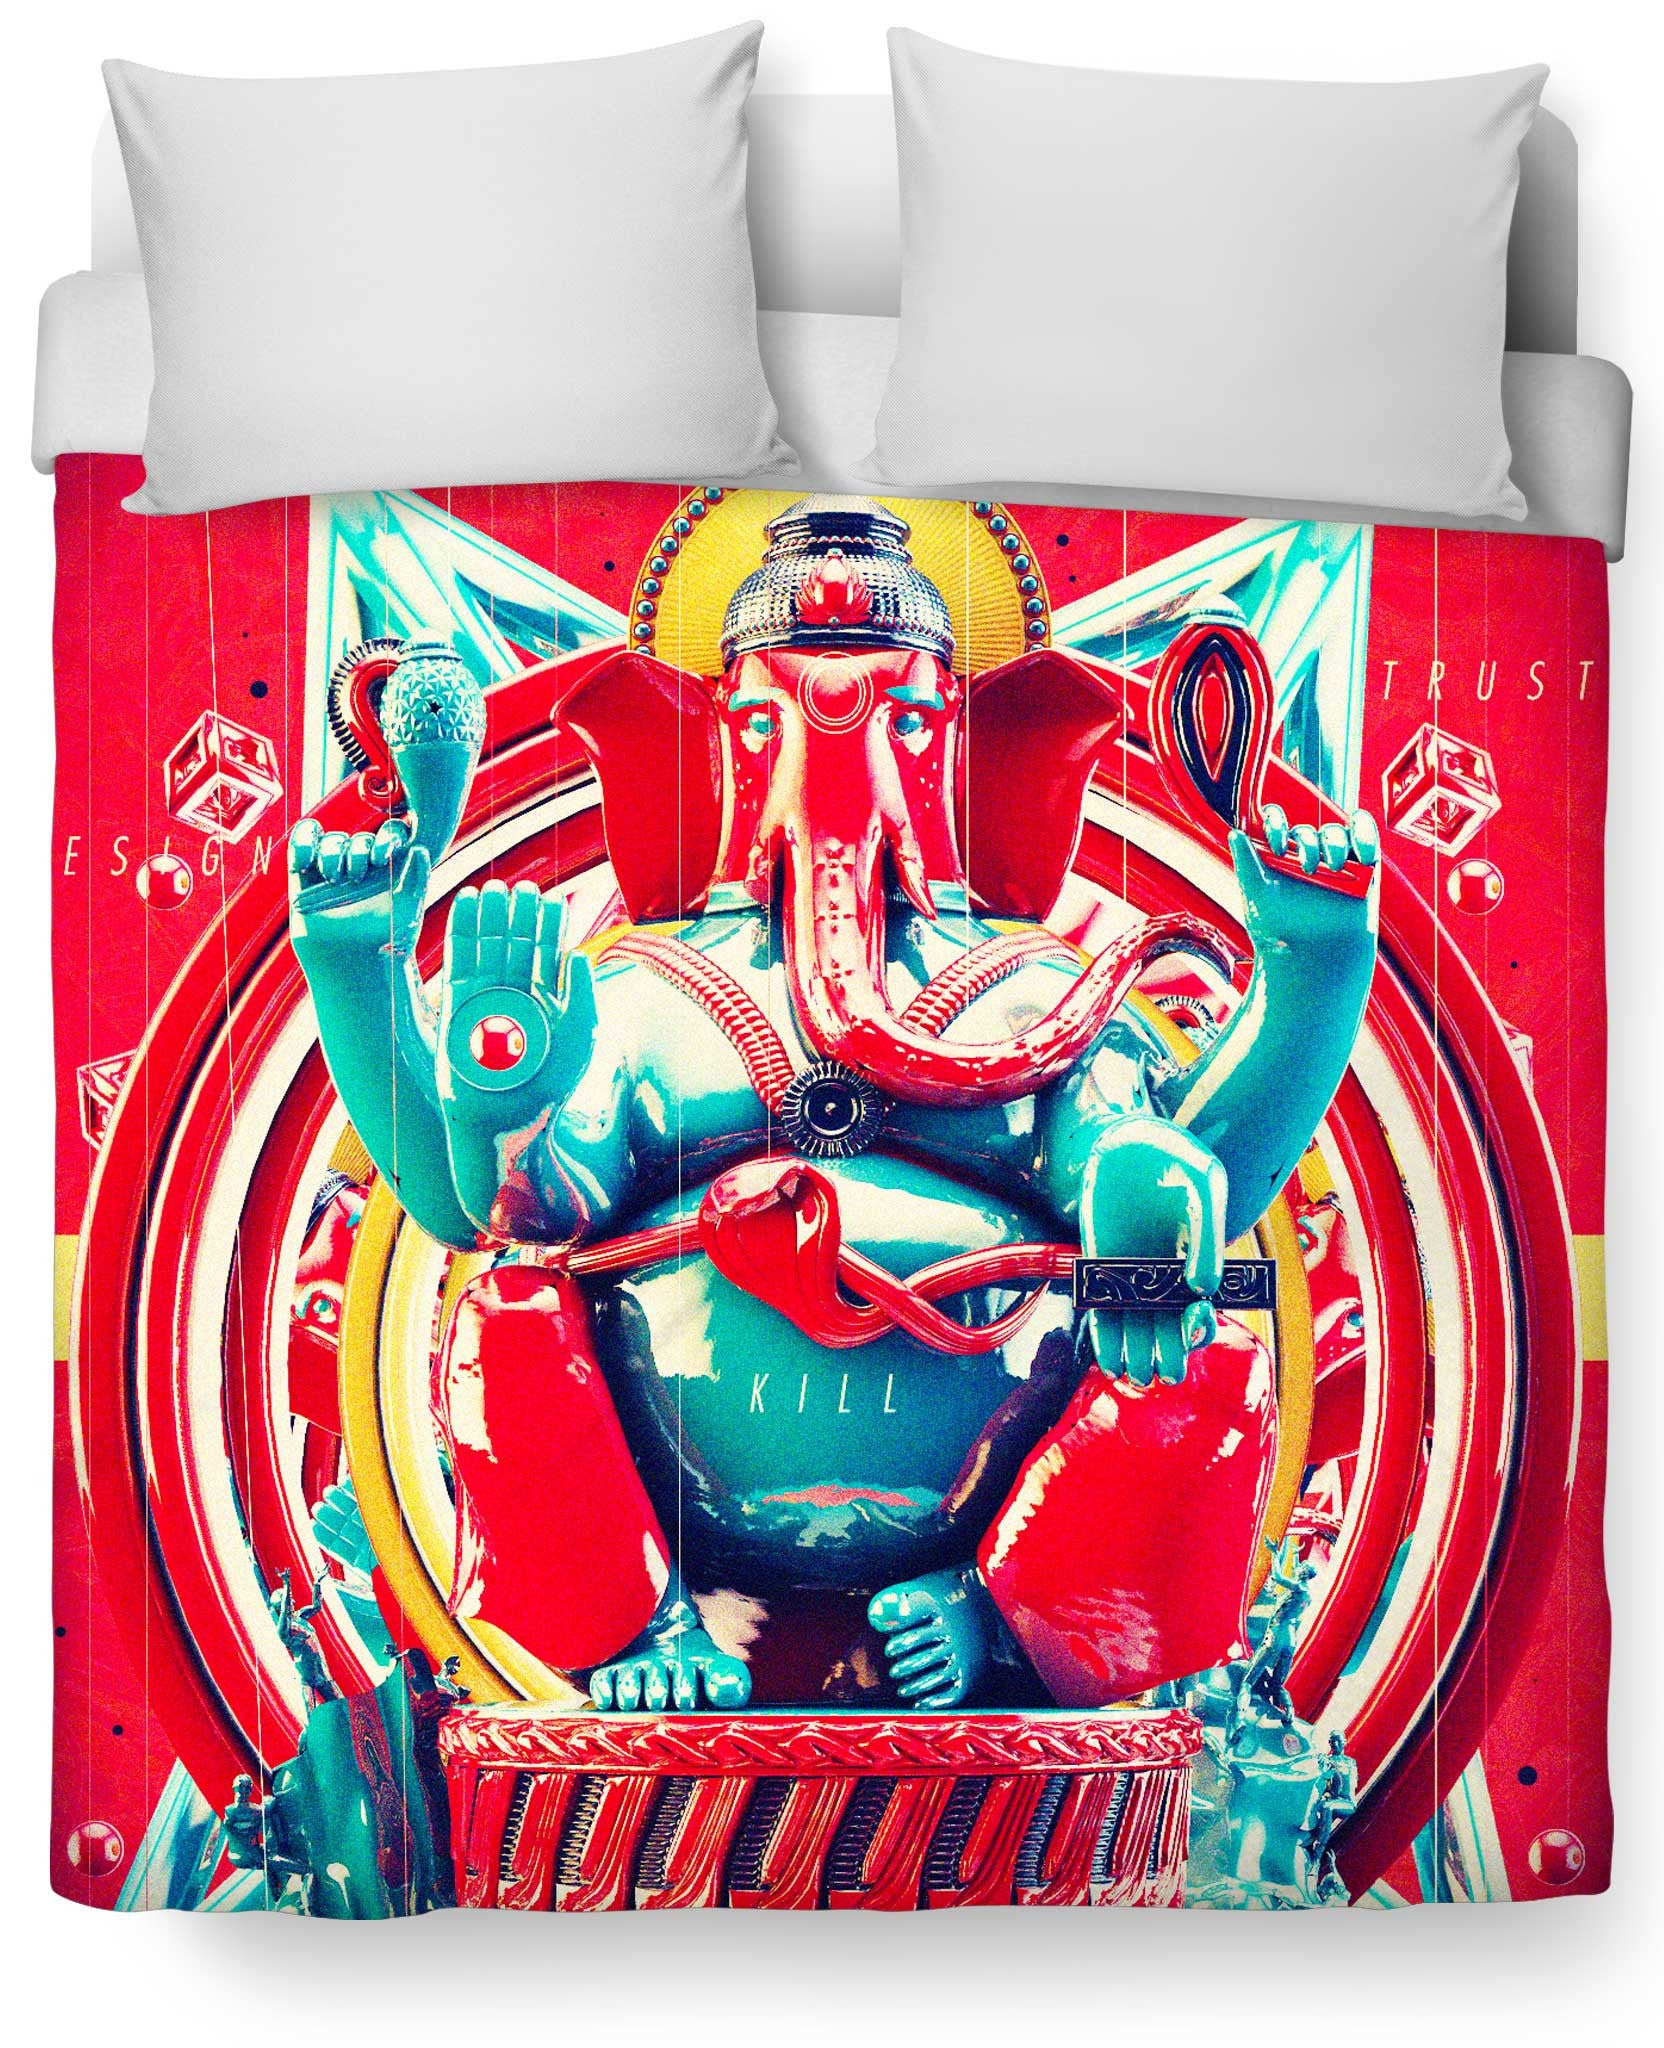 Elephant Kill Duvet Cover - TShirtsRUS.co